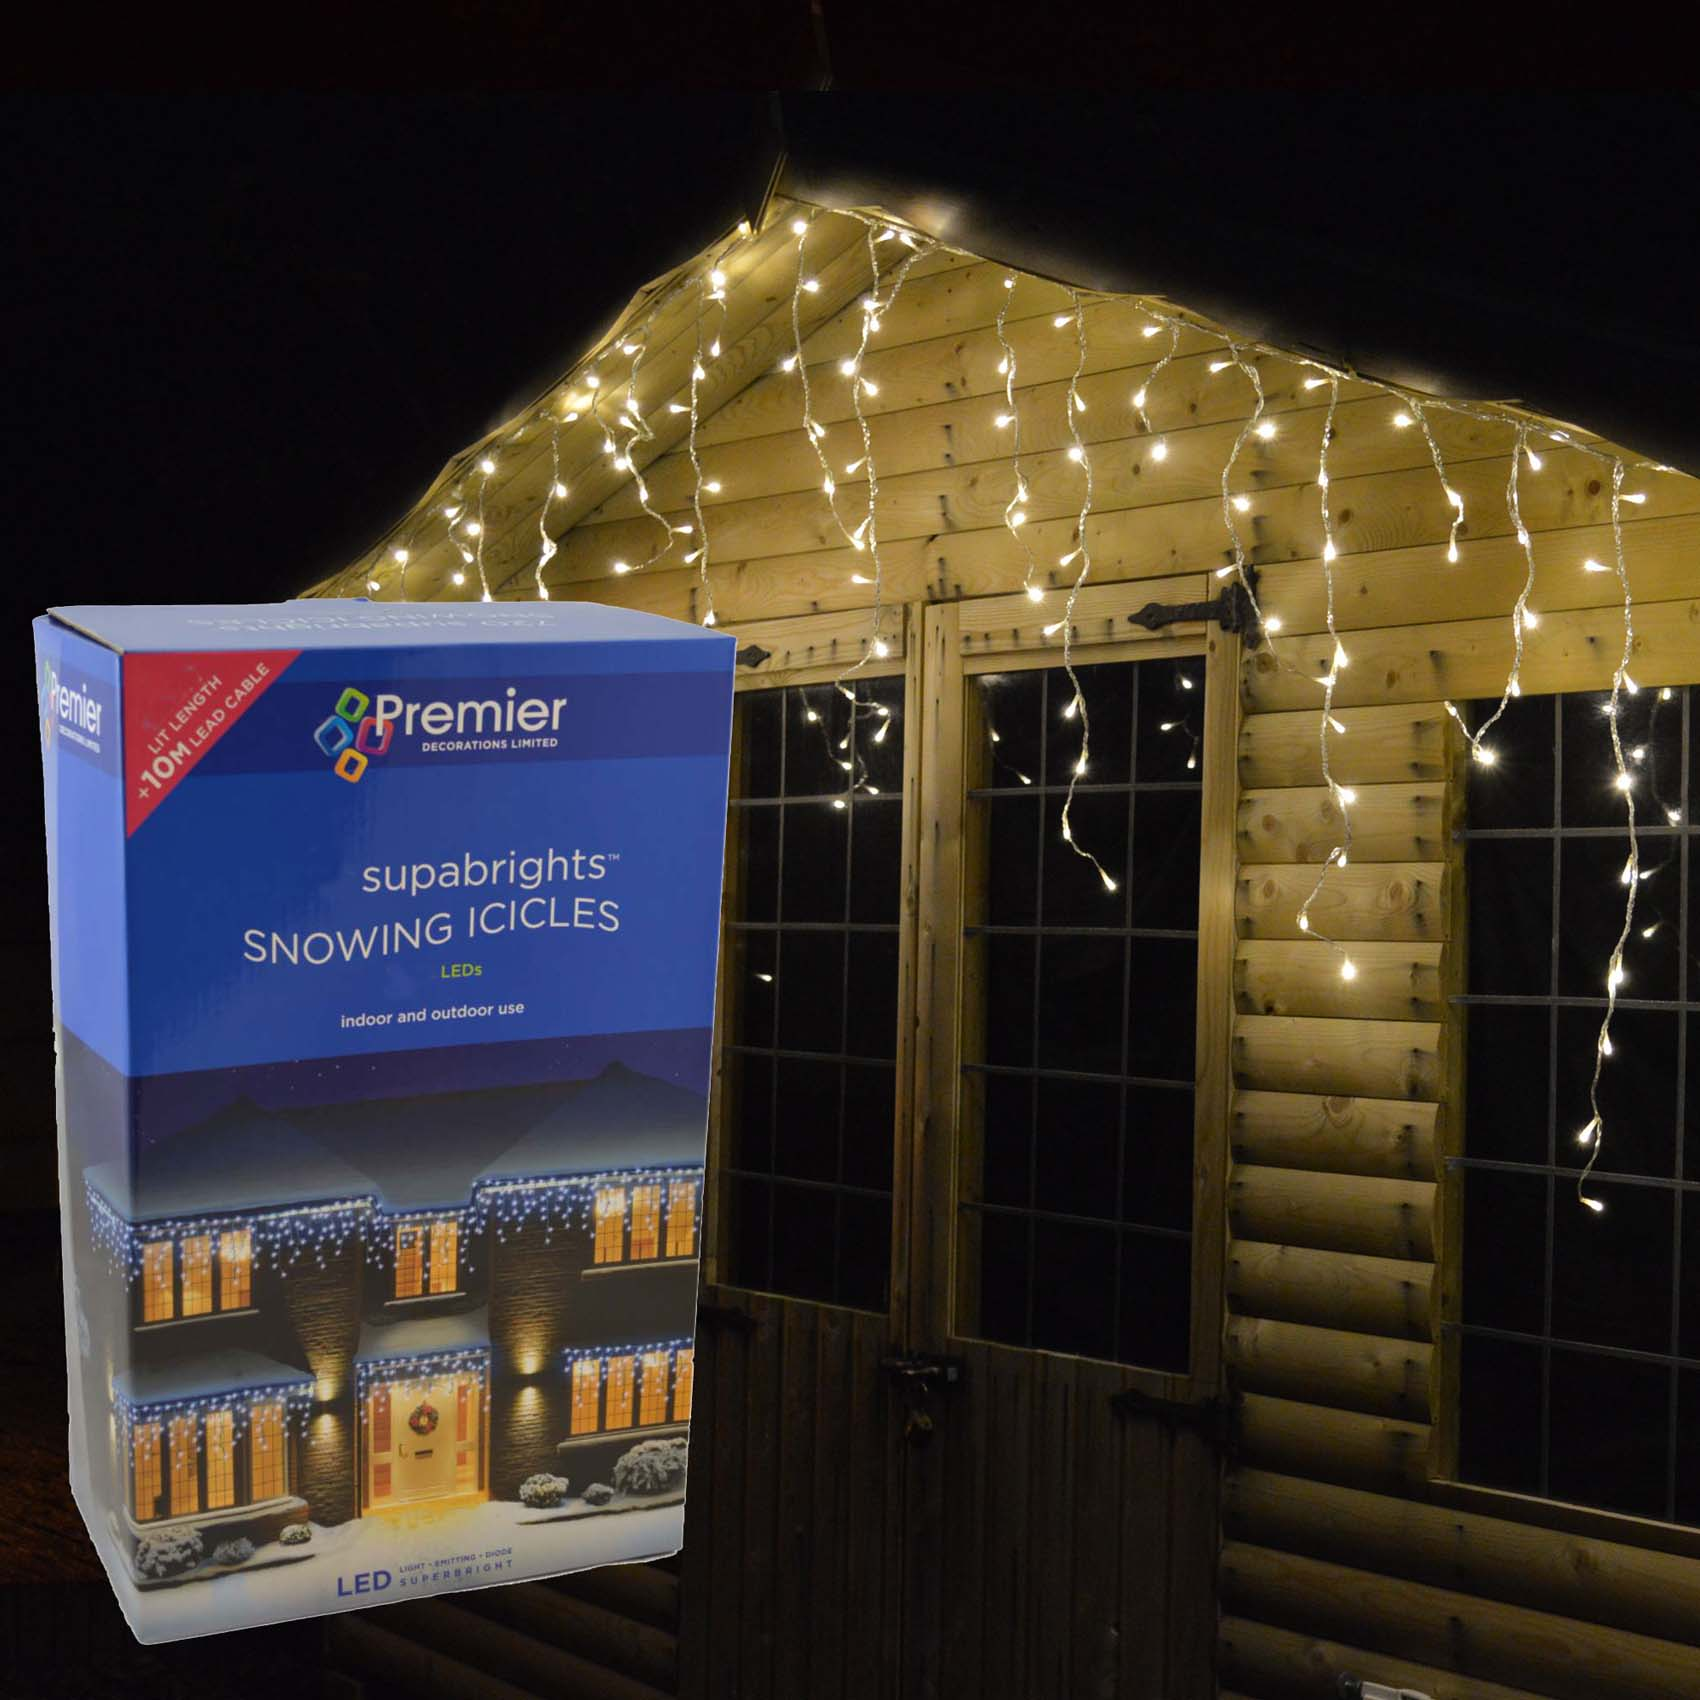 Icicle Christmas Lights.Details About Premier Outdoor Led Icicle Christmas Lights Blue White Or Multi Coloured